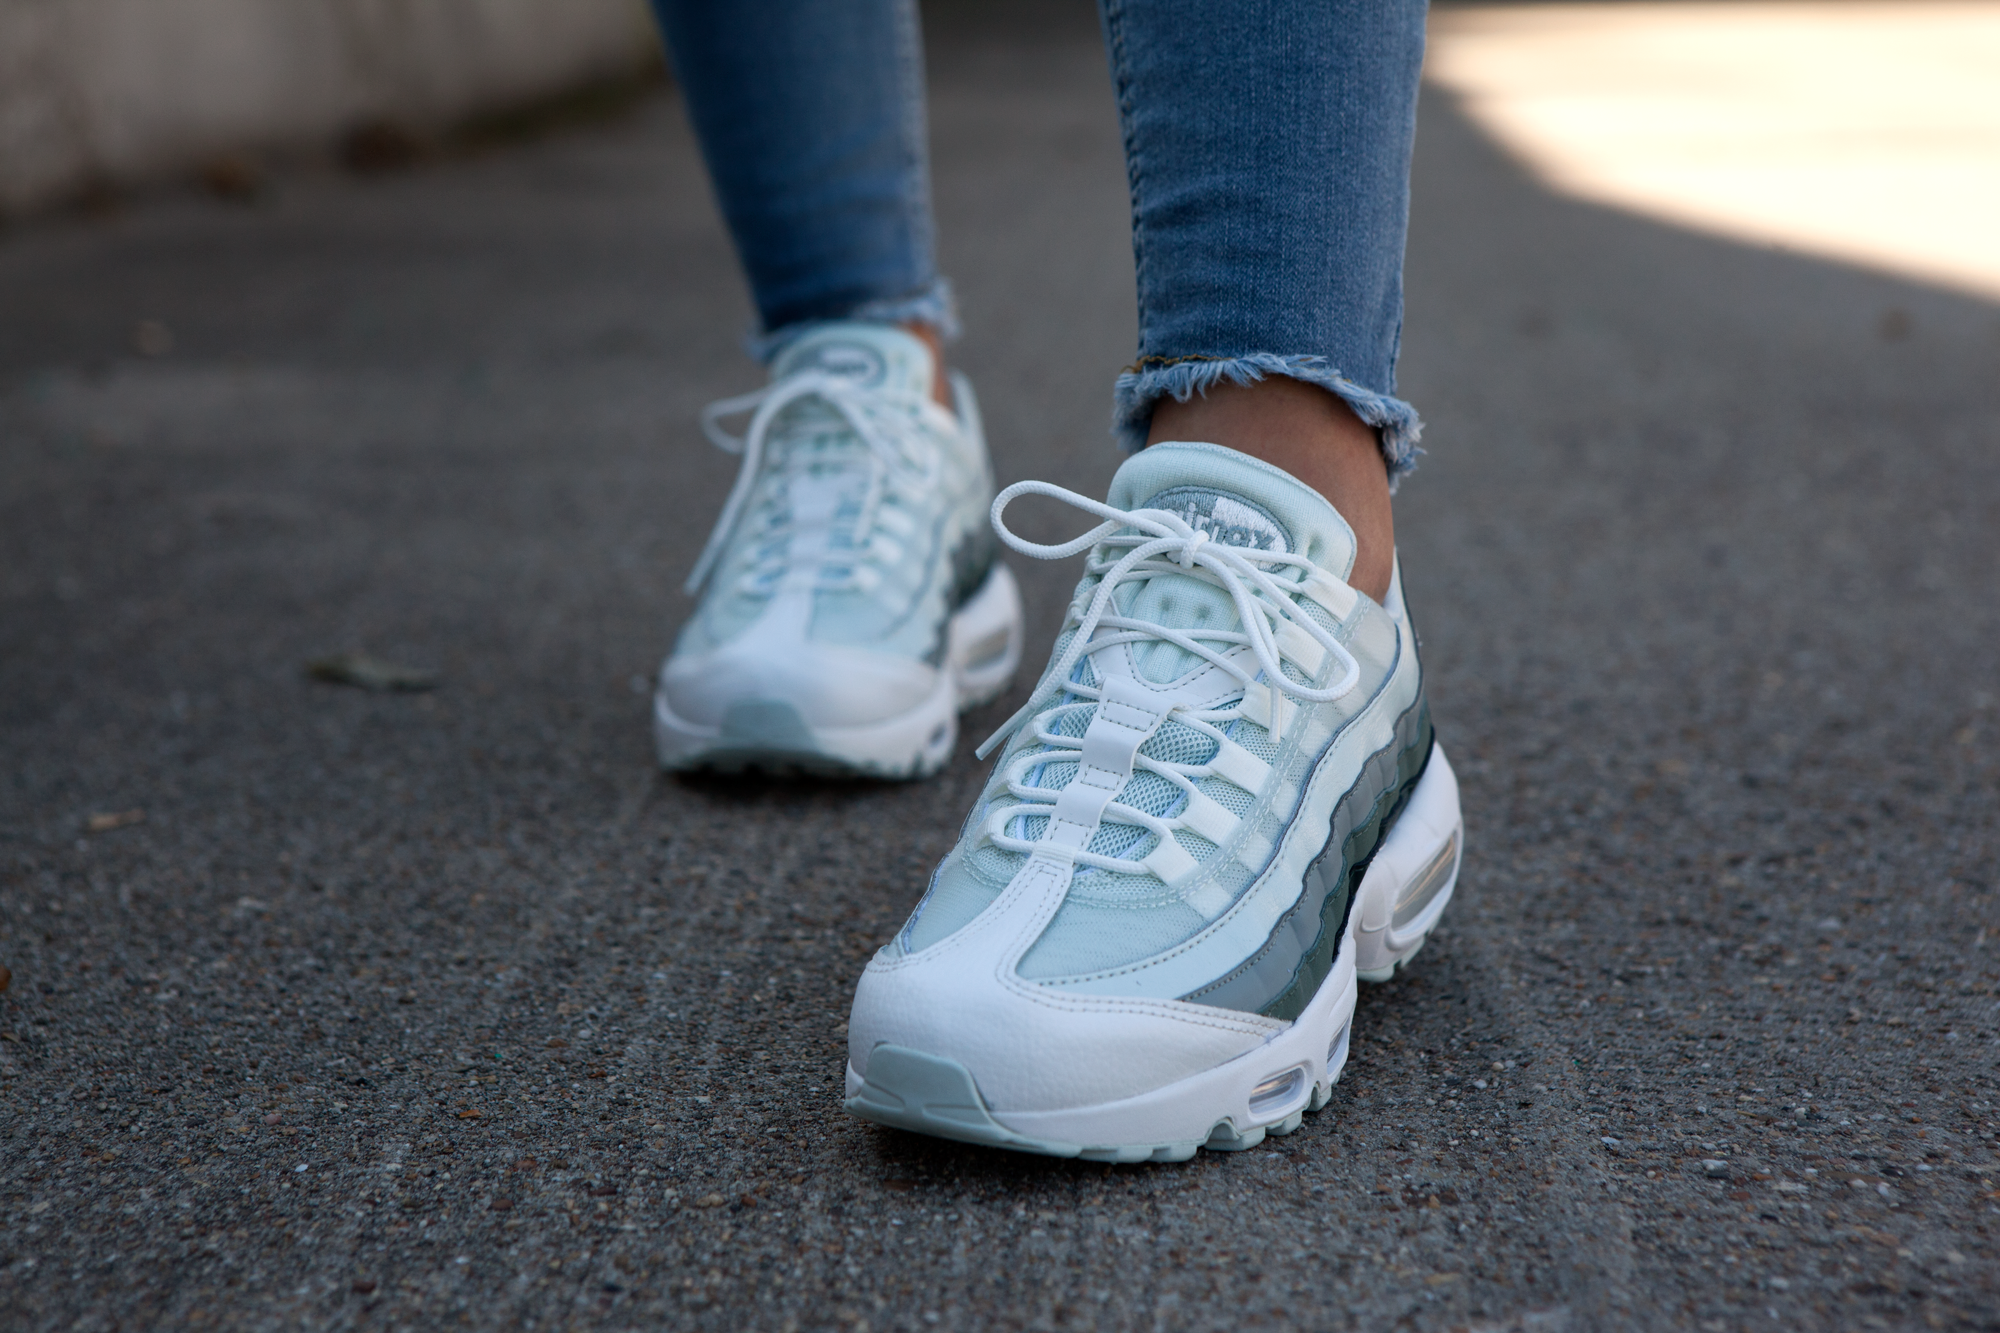 Nike Air Max 95 | Blauw/Grijs | Dames #Sneakers (With images ...